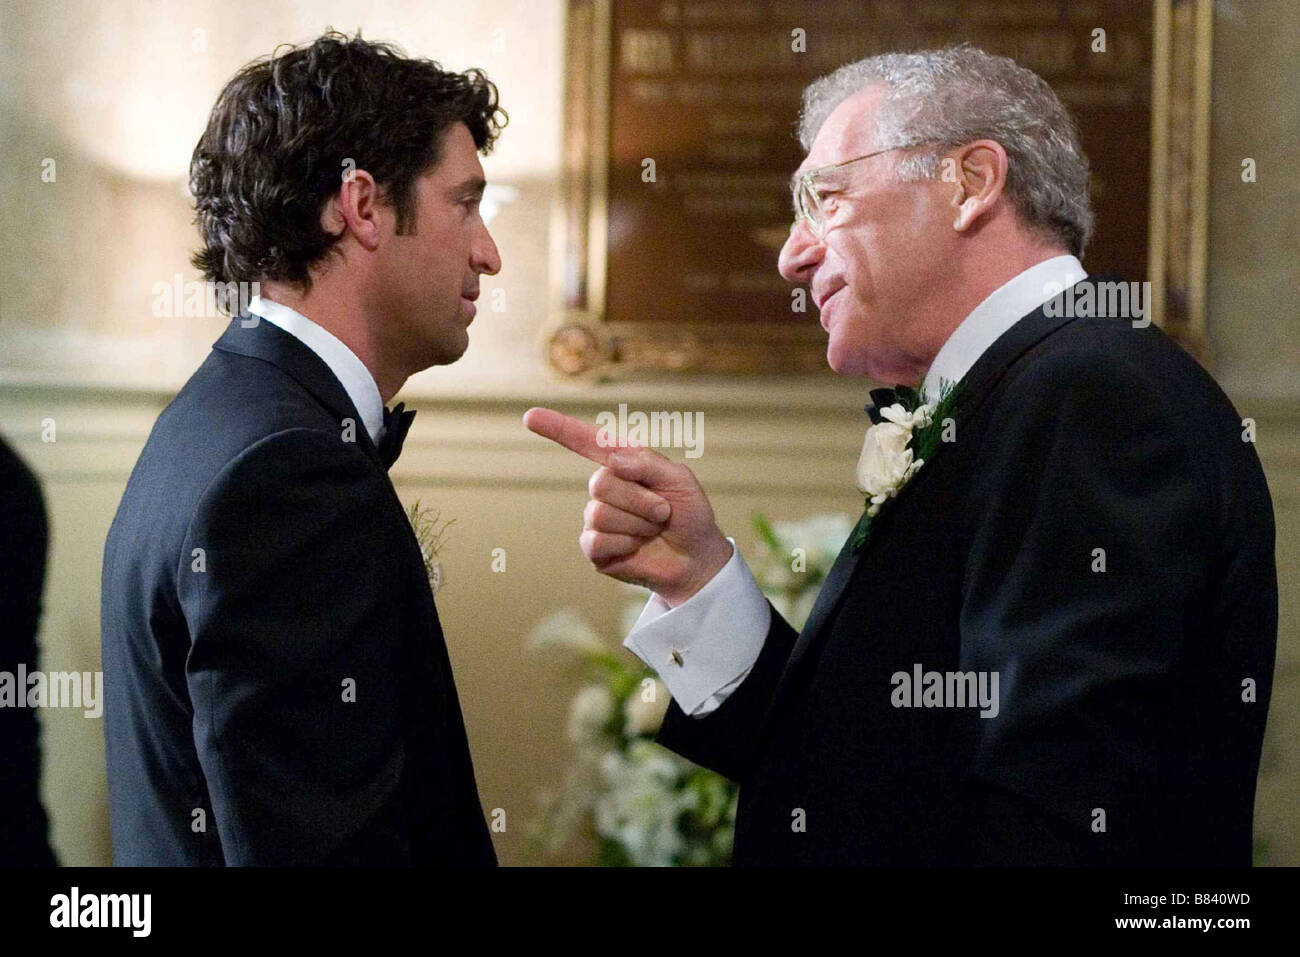 Le Témoin amoureux Made of Honor  Year: 2008 - USA / UK Patrick Dempsey, Sydney Pollack  Director: Paul Weiland - Stock Image